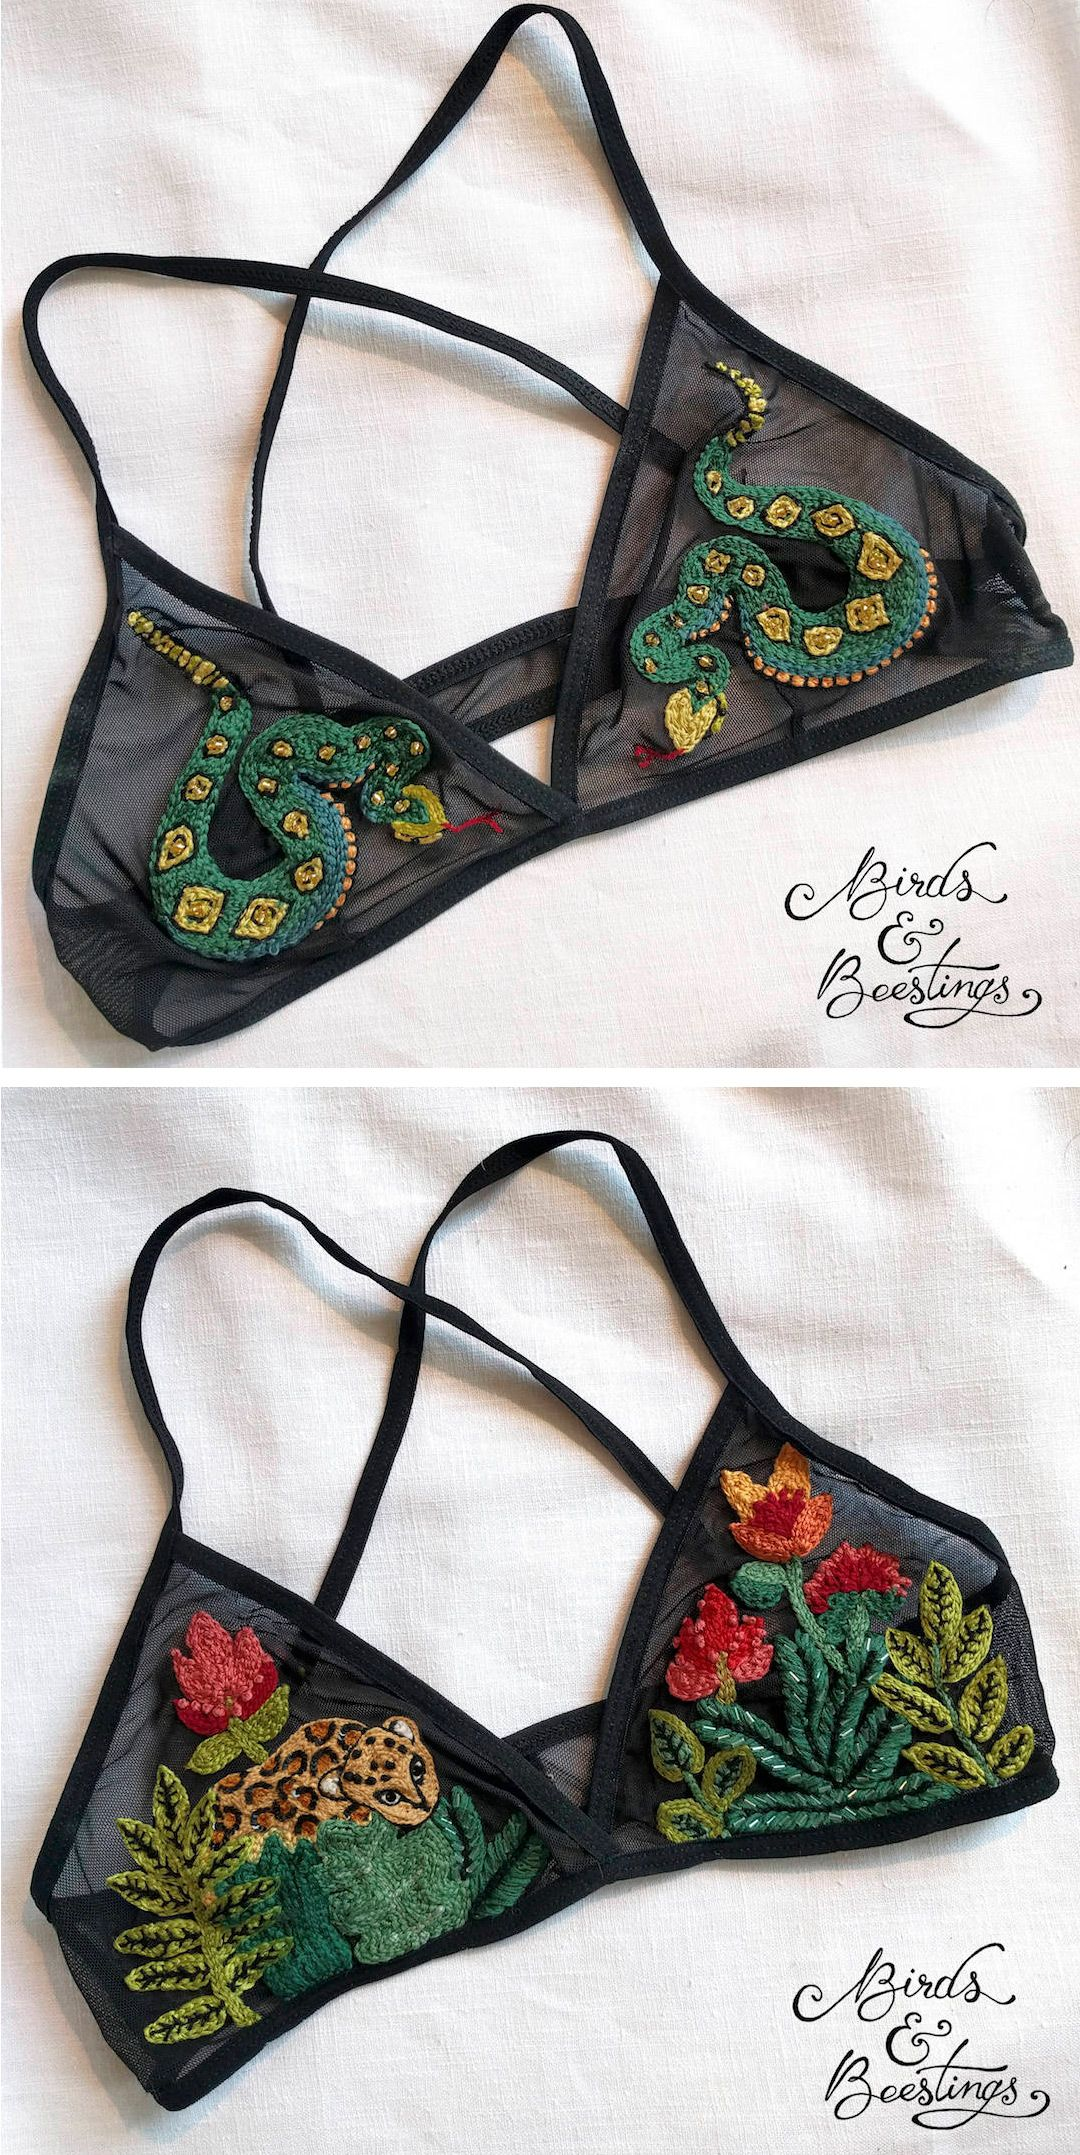 d325be256e Embroidered bralettes by Birds   Beestings    bespoke bras    bespoke  fashion    hand embroidery